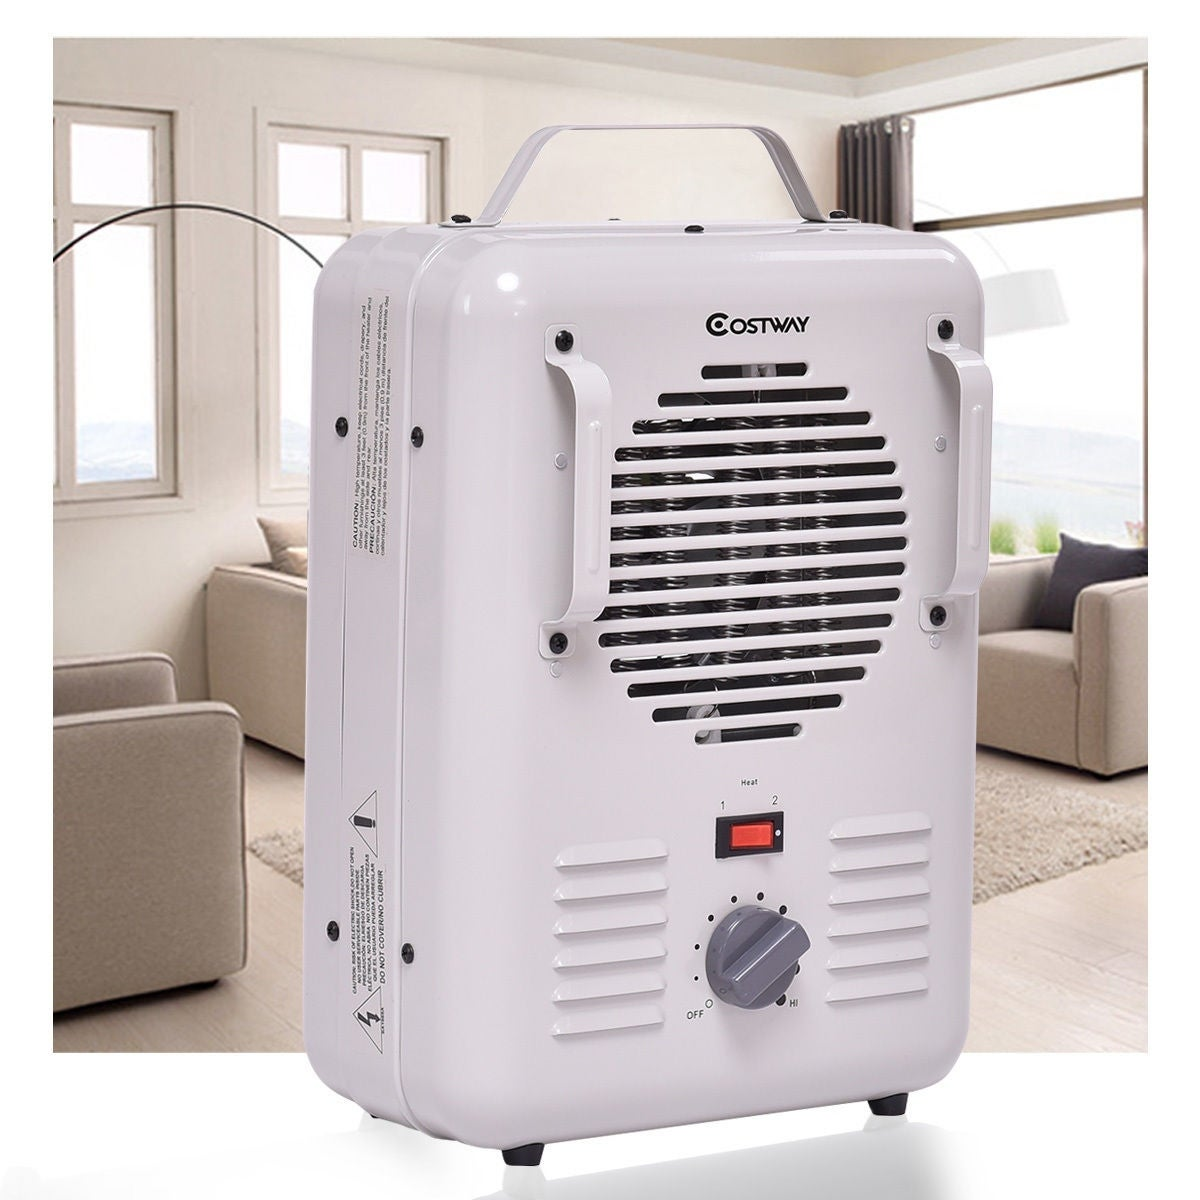 The heater is an excellent device for heating the room